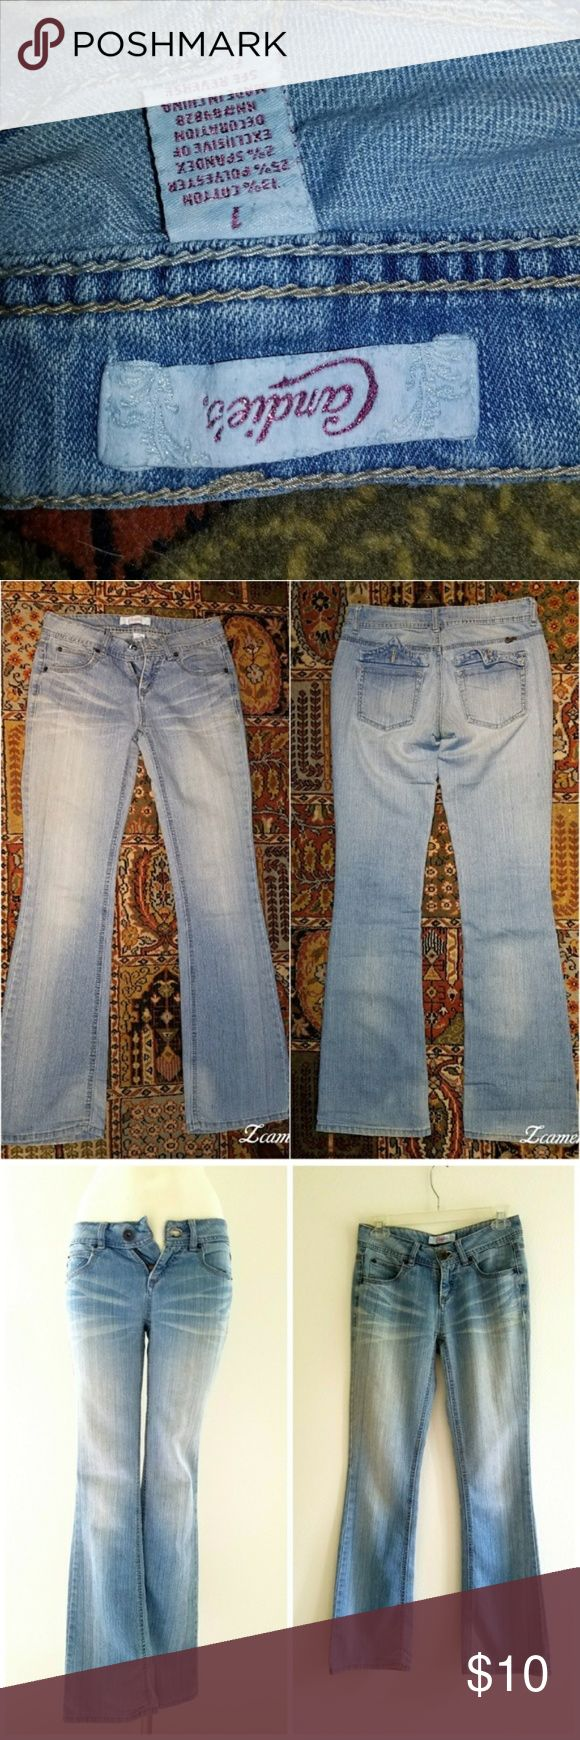 Candies Flare Light Wash Jeans Candies flare Light Wash Jeans. 5 pockets with 2 in the back are button pockets they came off an no long have them. 31 inseam jeans. Size 1  Midrise sits above the hip Zipper fly Candie's Jeans Flare & Wide Leg